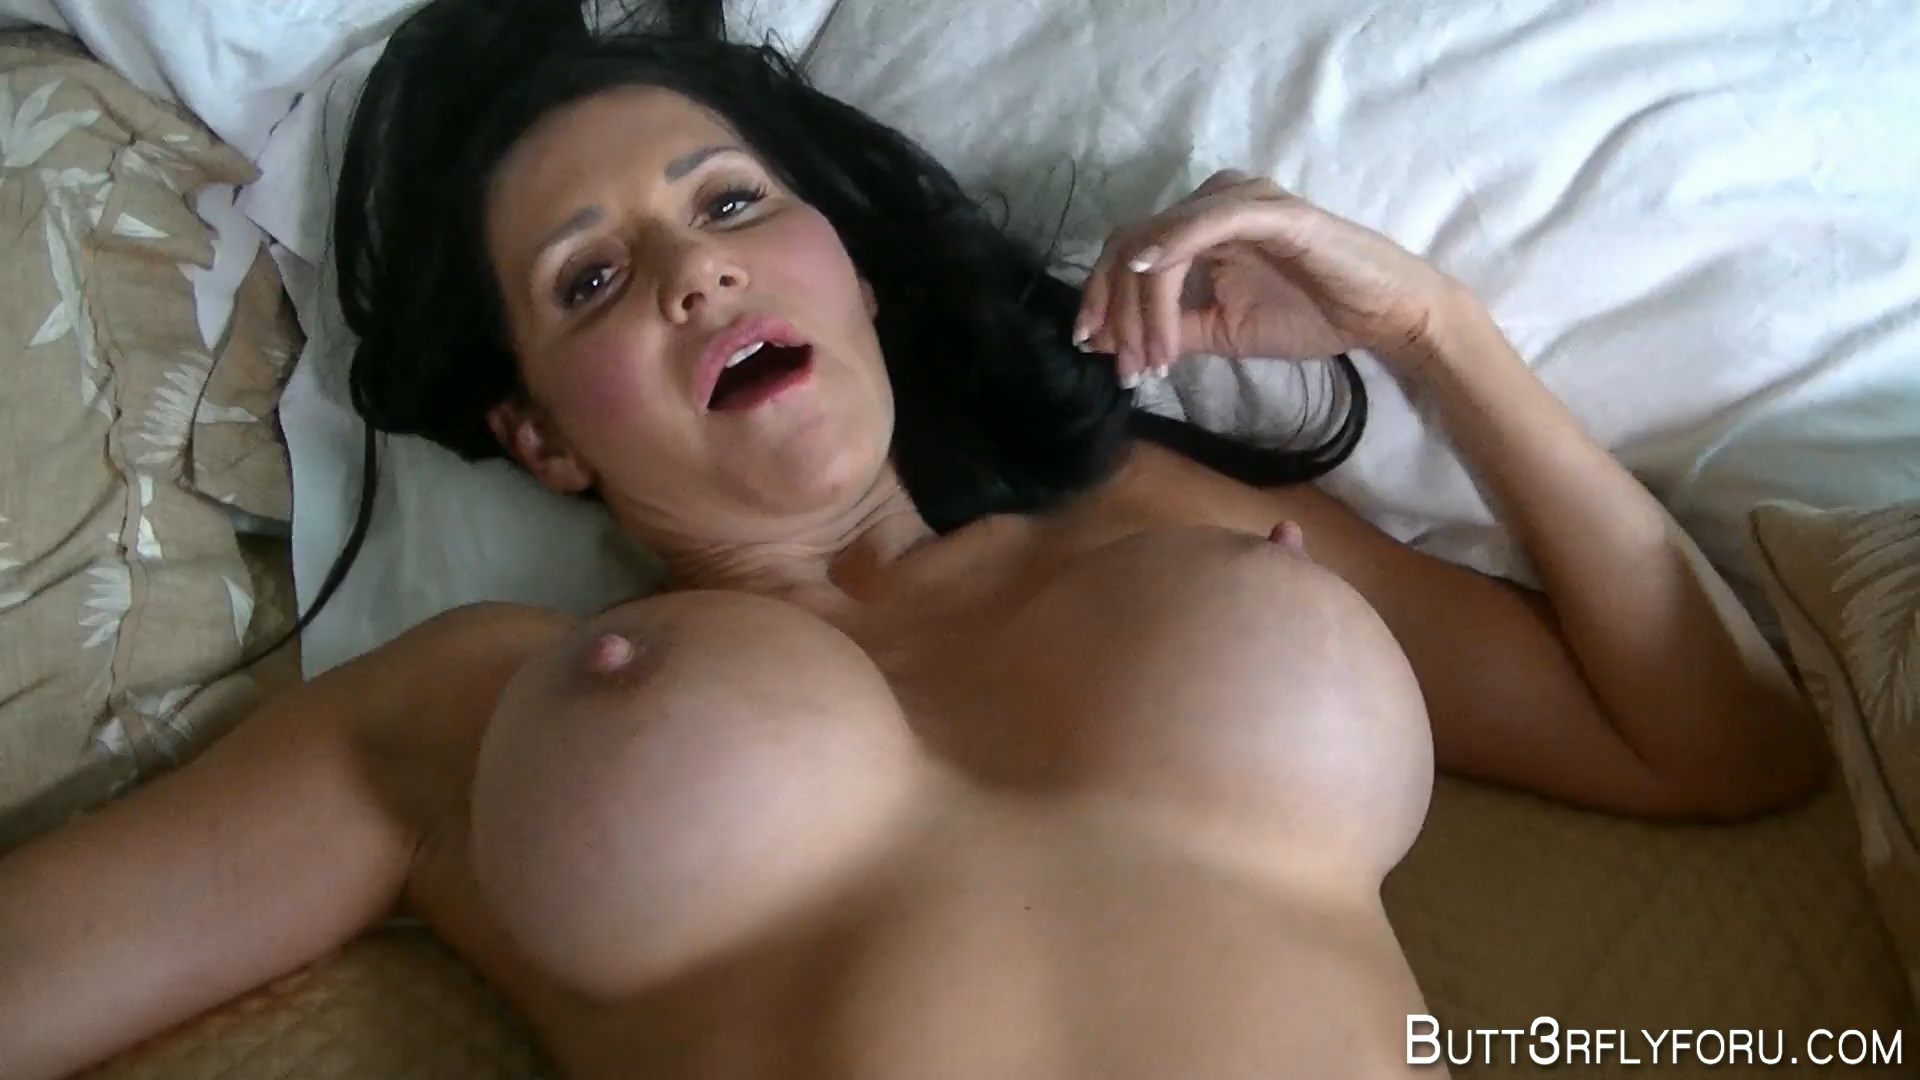 Grief Stricken Mommy - butt3rflyforU Fantasies